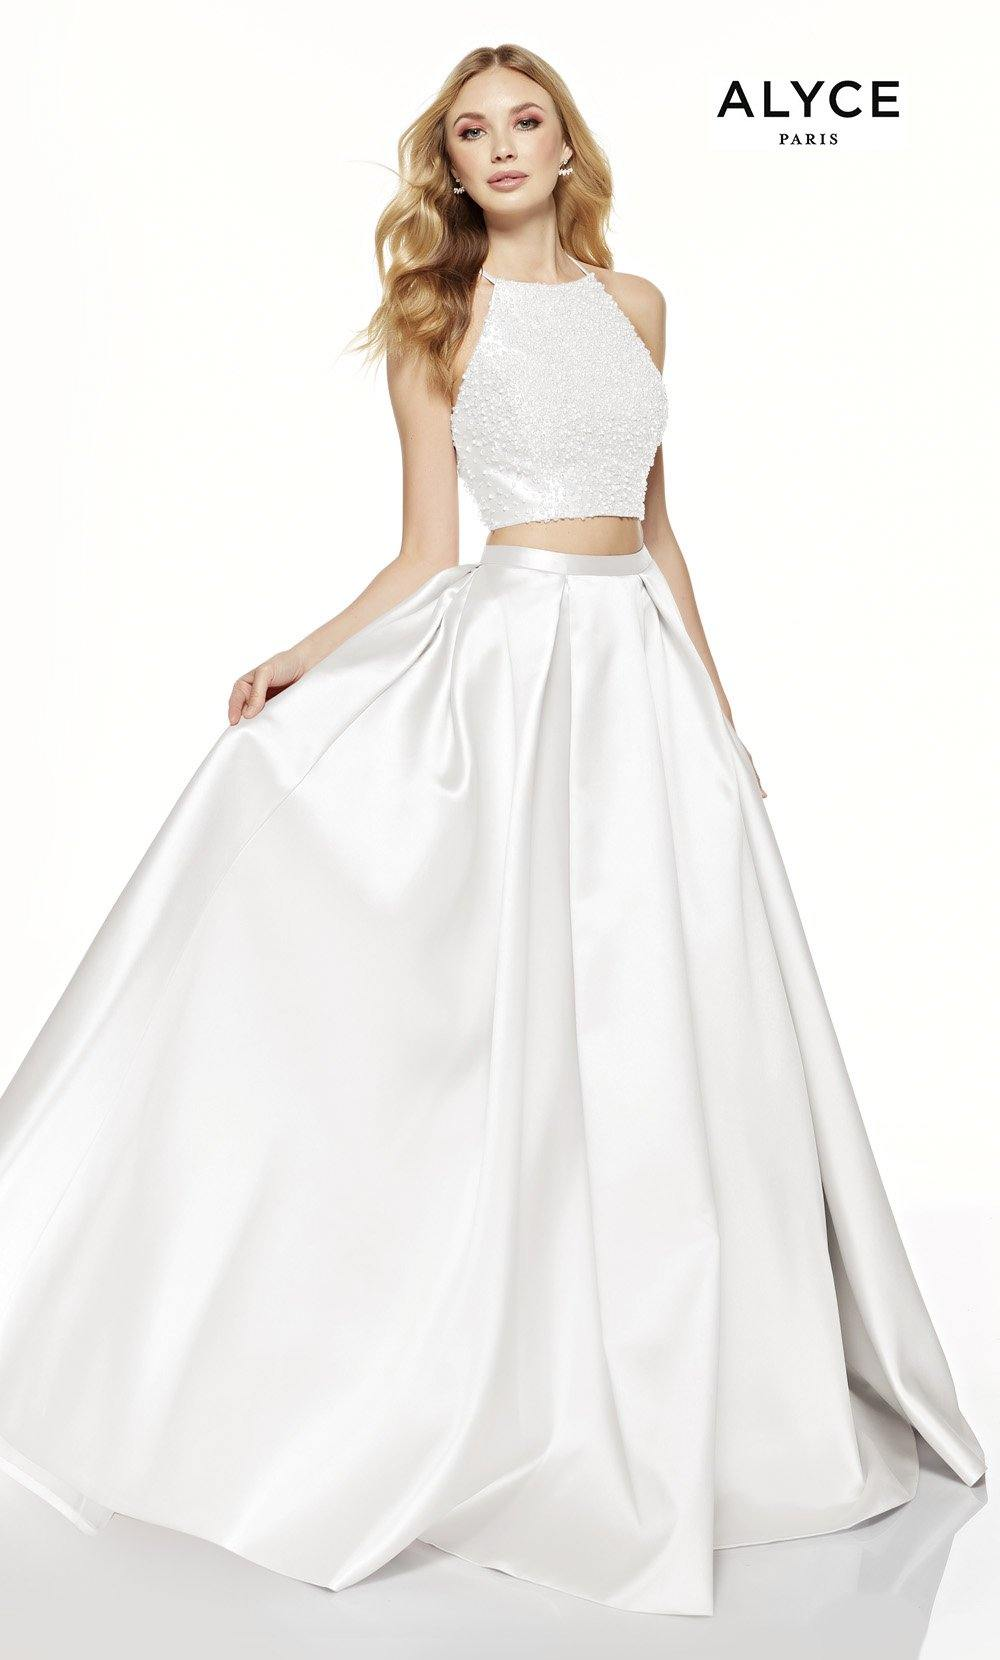 Diamond White two piece prom dress with a beaded halter crop top